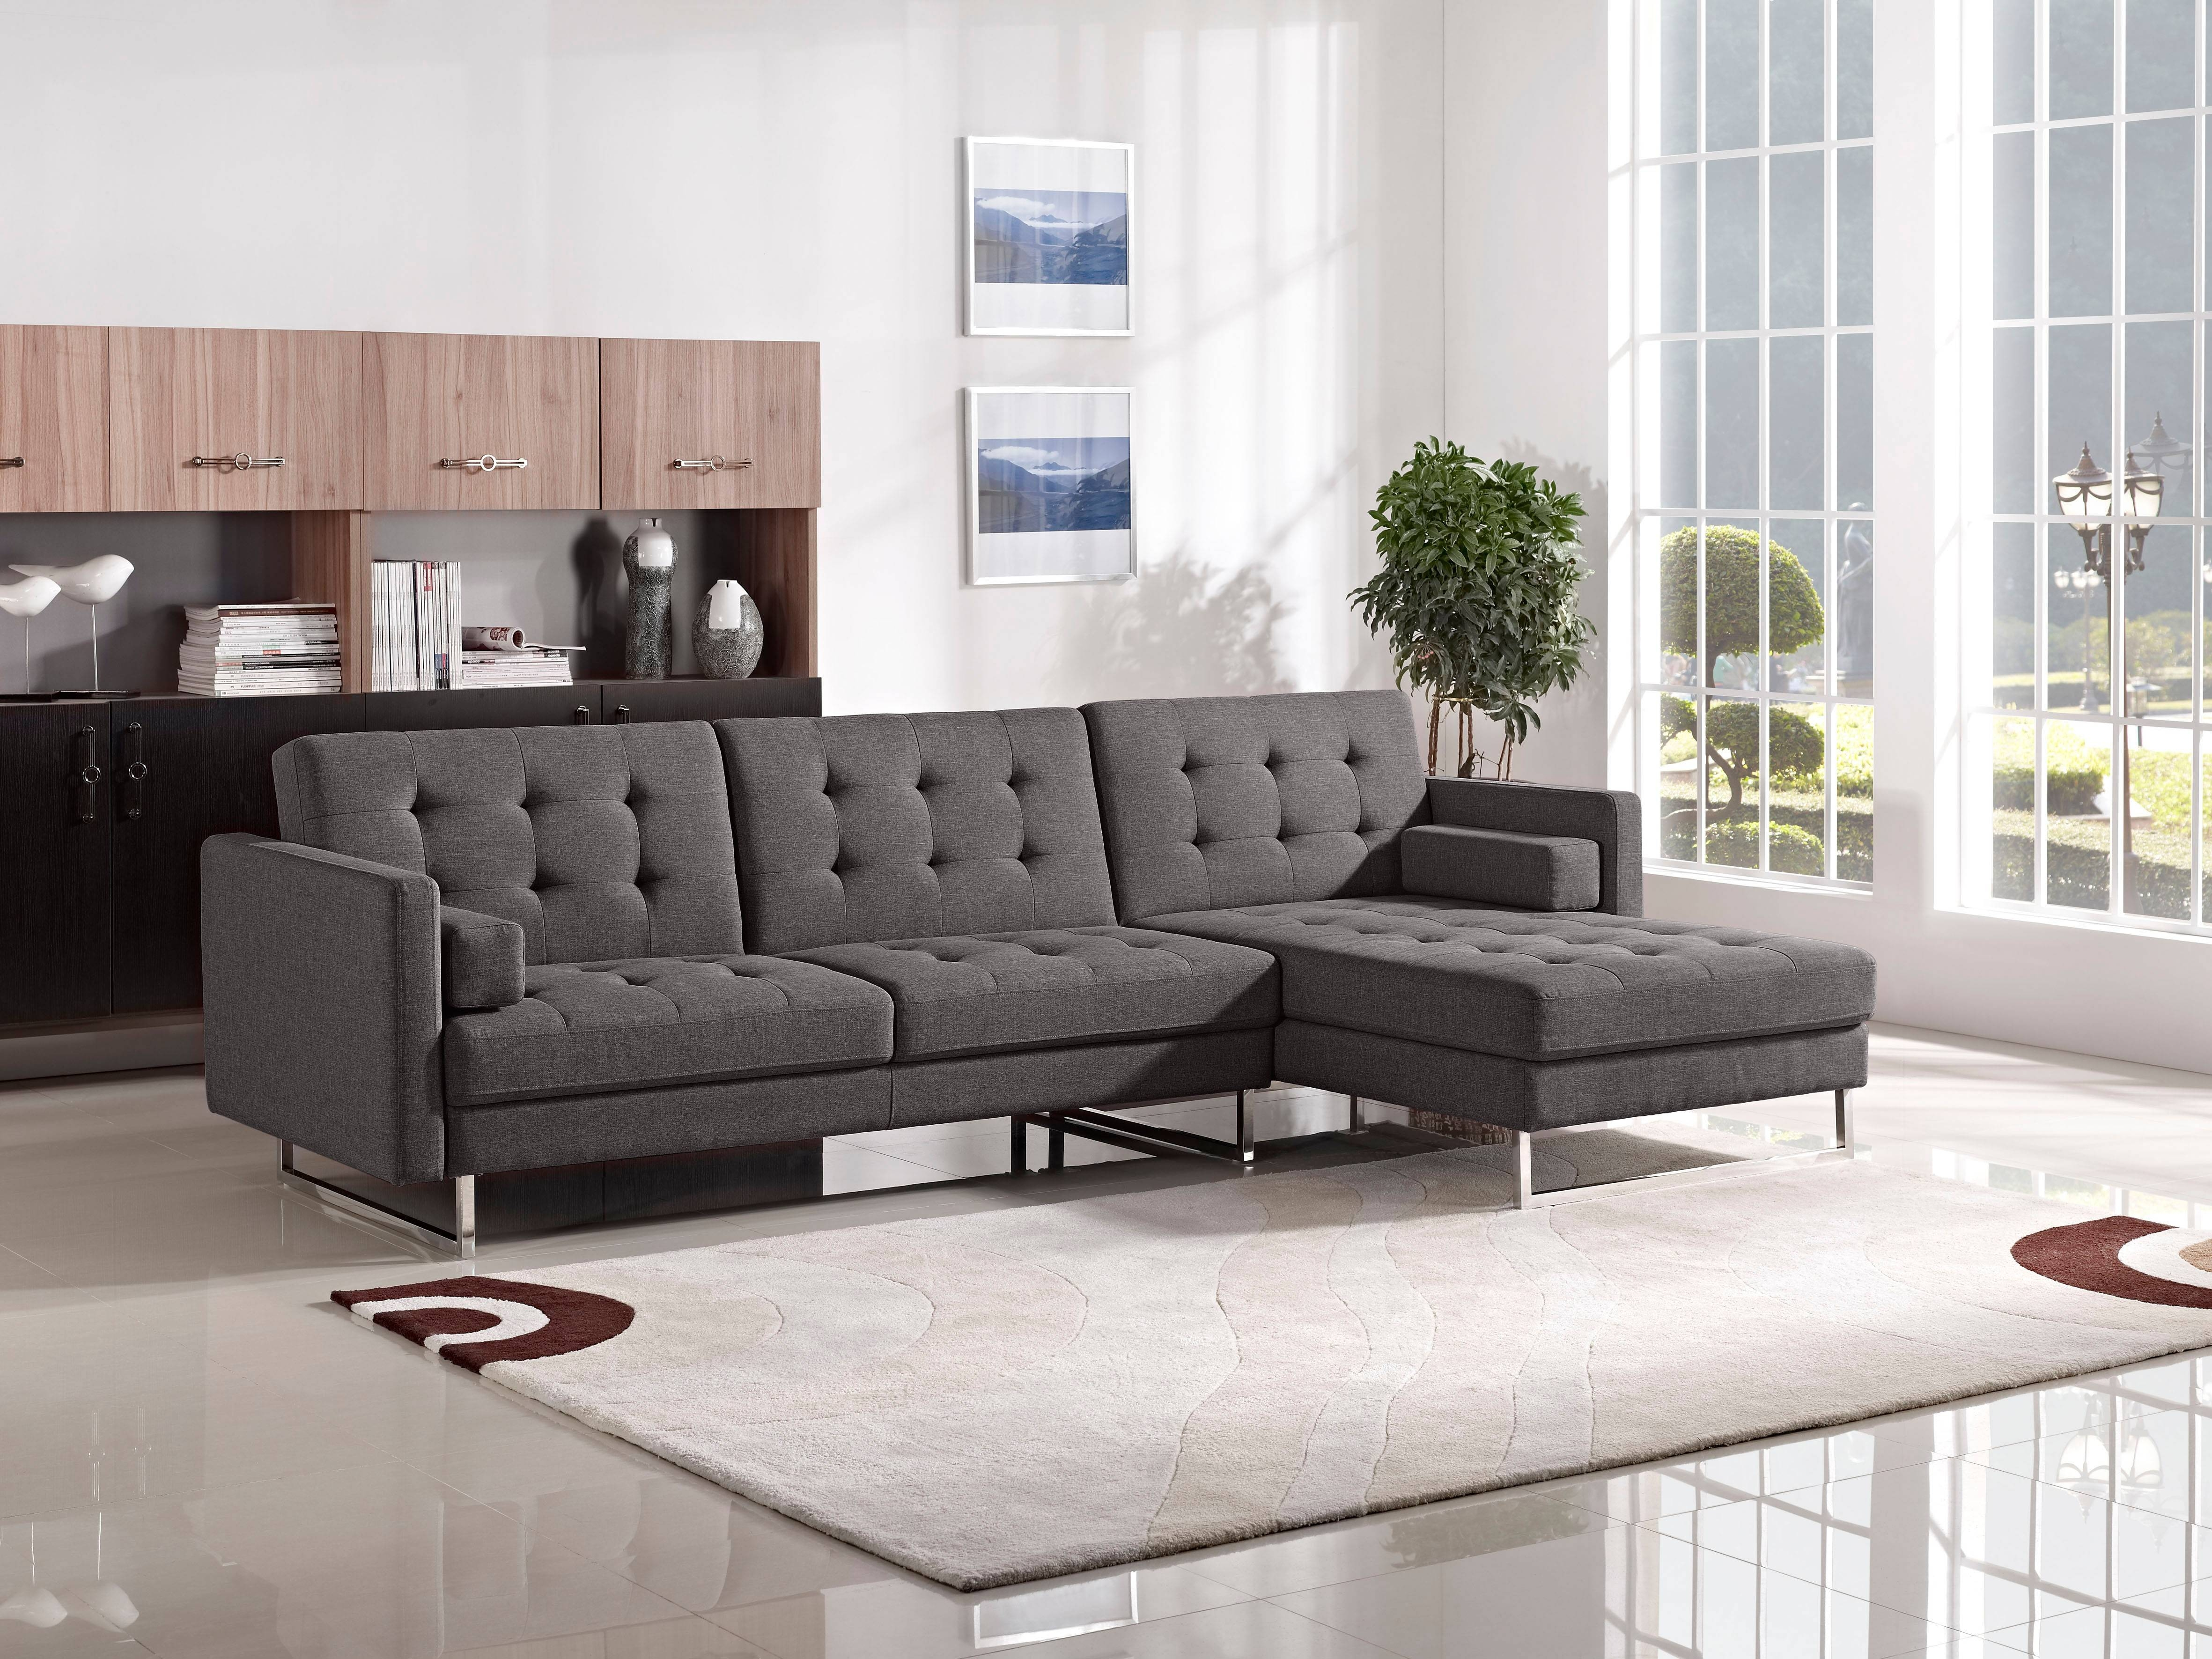 Furniture : Loveseat Patio Furniture Loveseat Couch Loveseat in Affordable Tufted Sofa (Image 10 of 30)